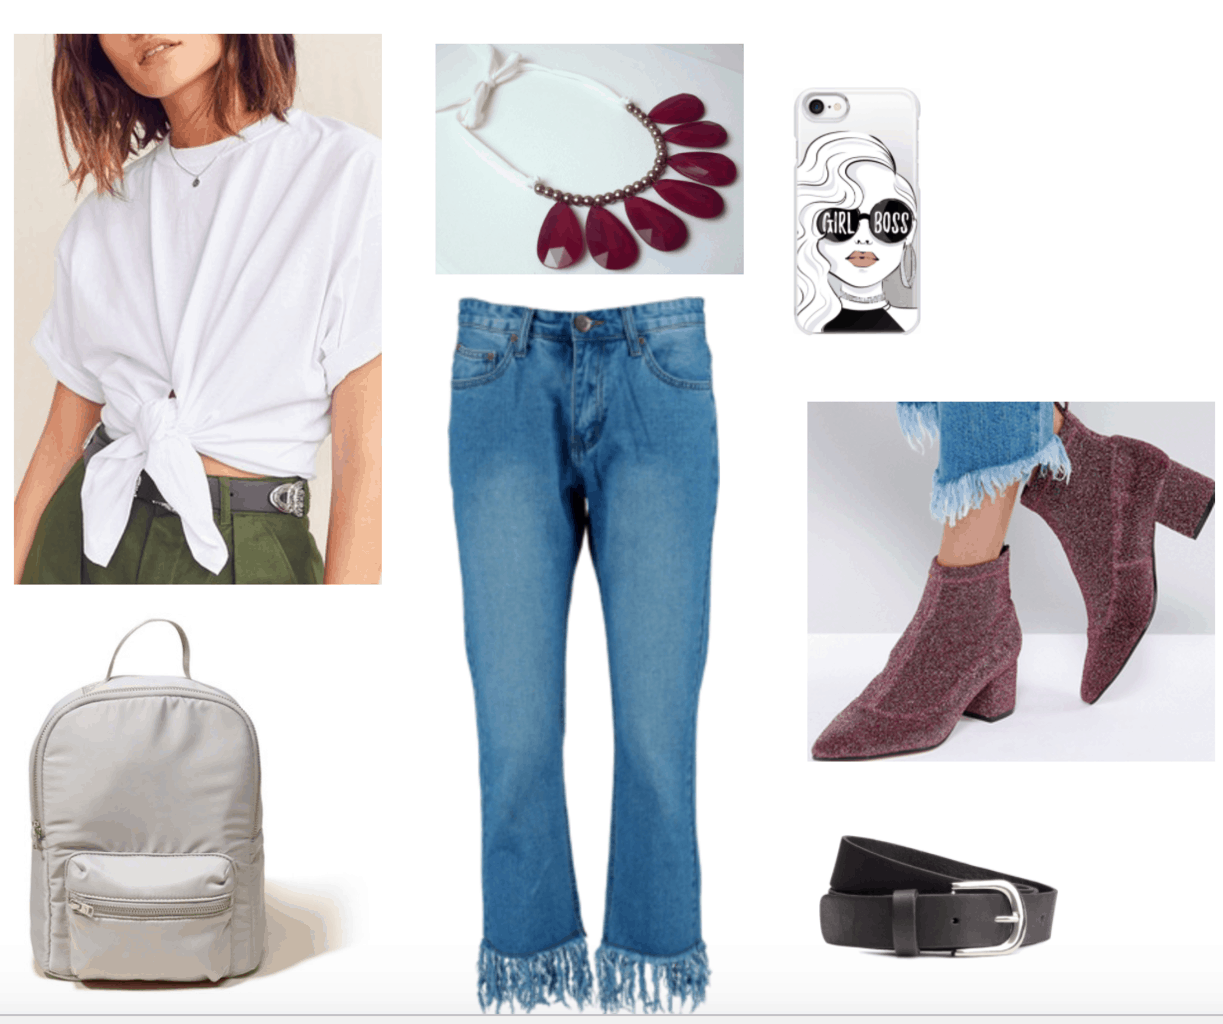 Sock Boot Outfits 3 Ways to Wear the Trend